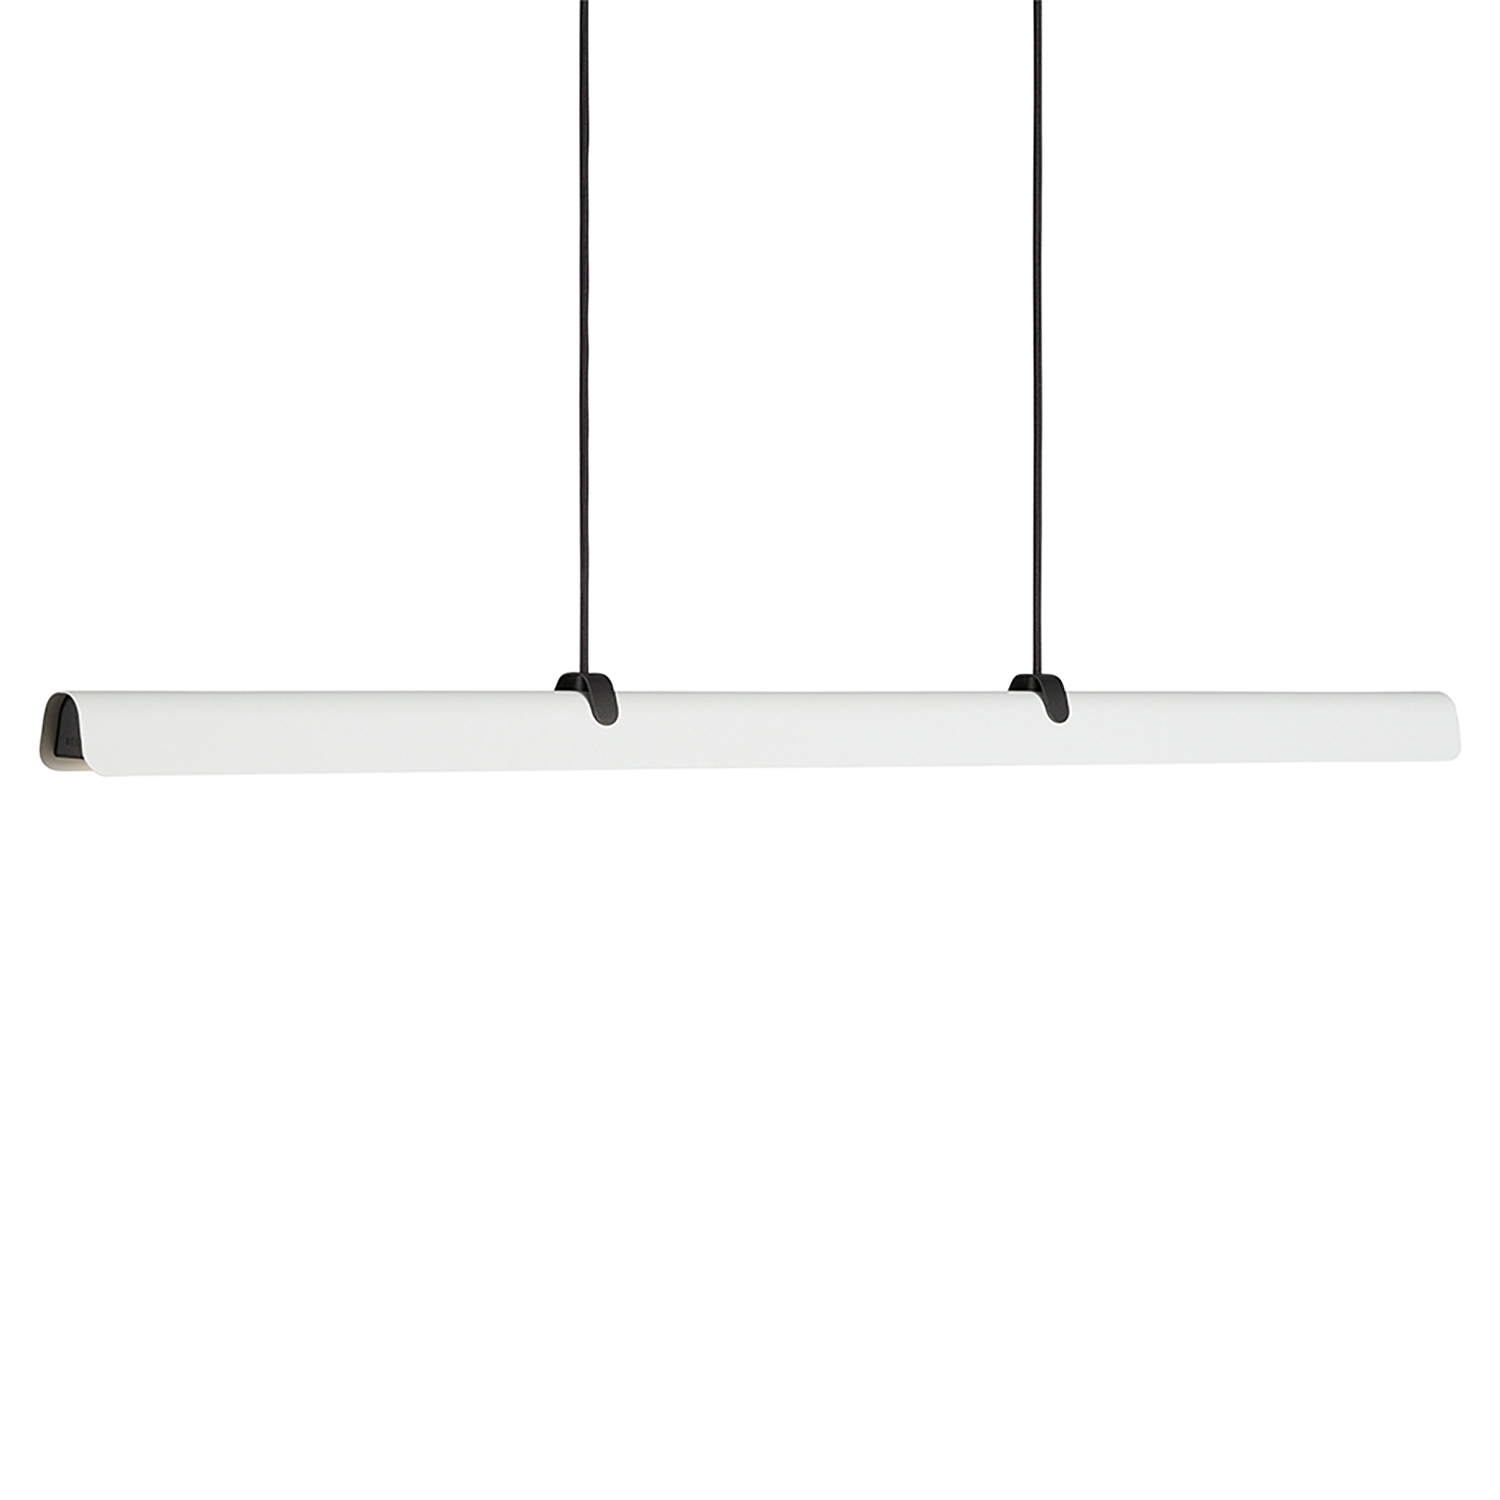 Belid-Fold ceiling 118 cm, Anthracite/White